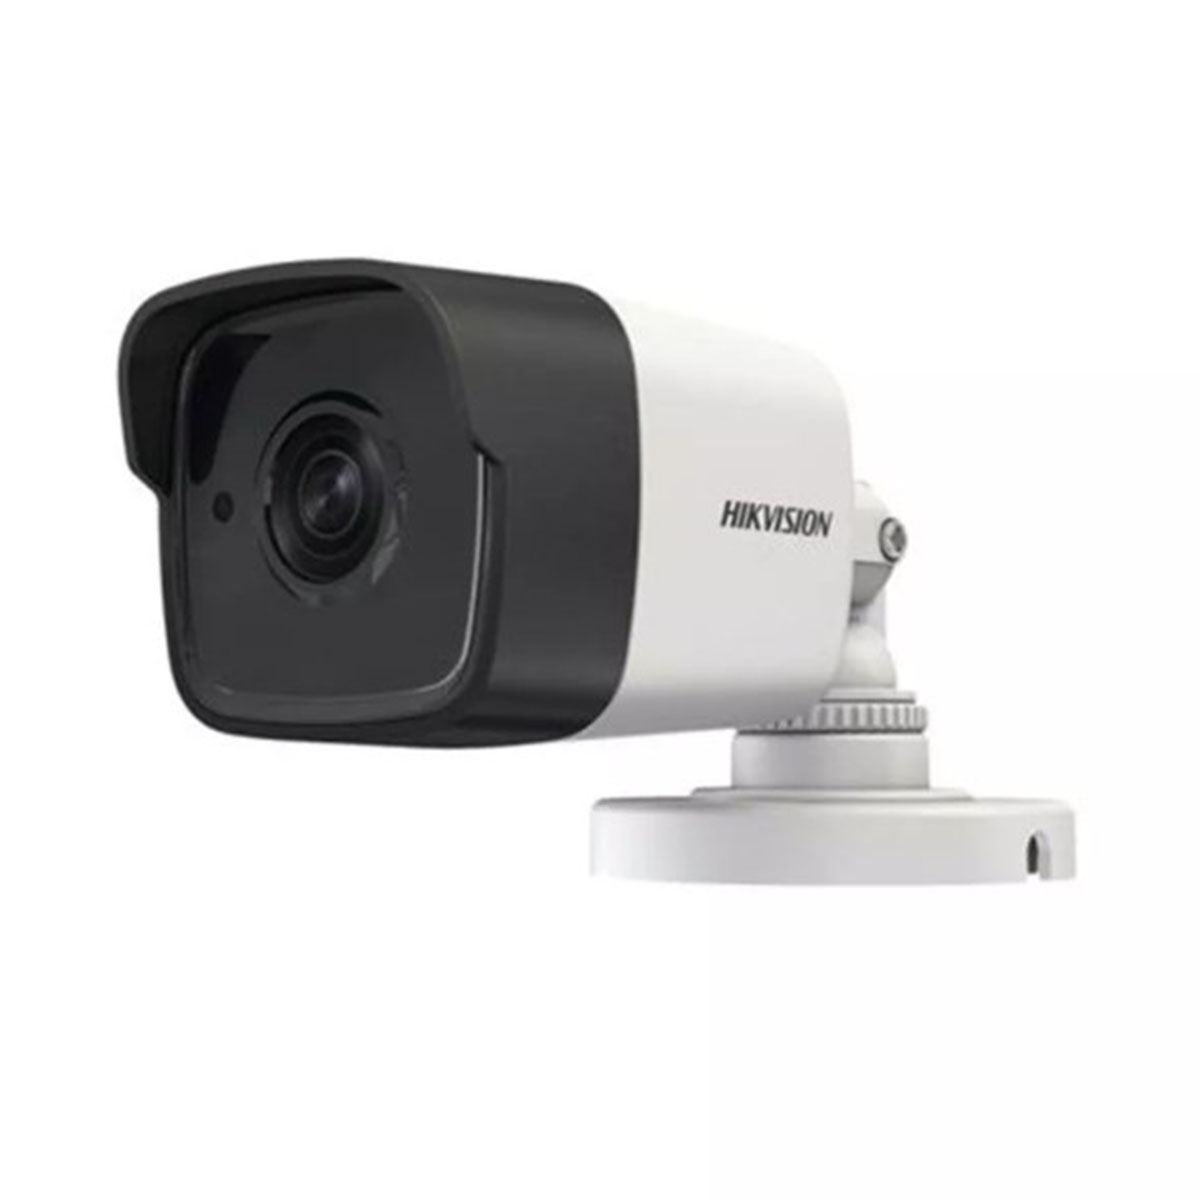 Cámara Hikvision IP DS-2CD1001-I Bullet 1MP